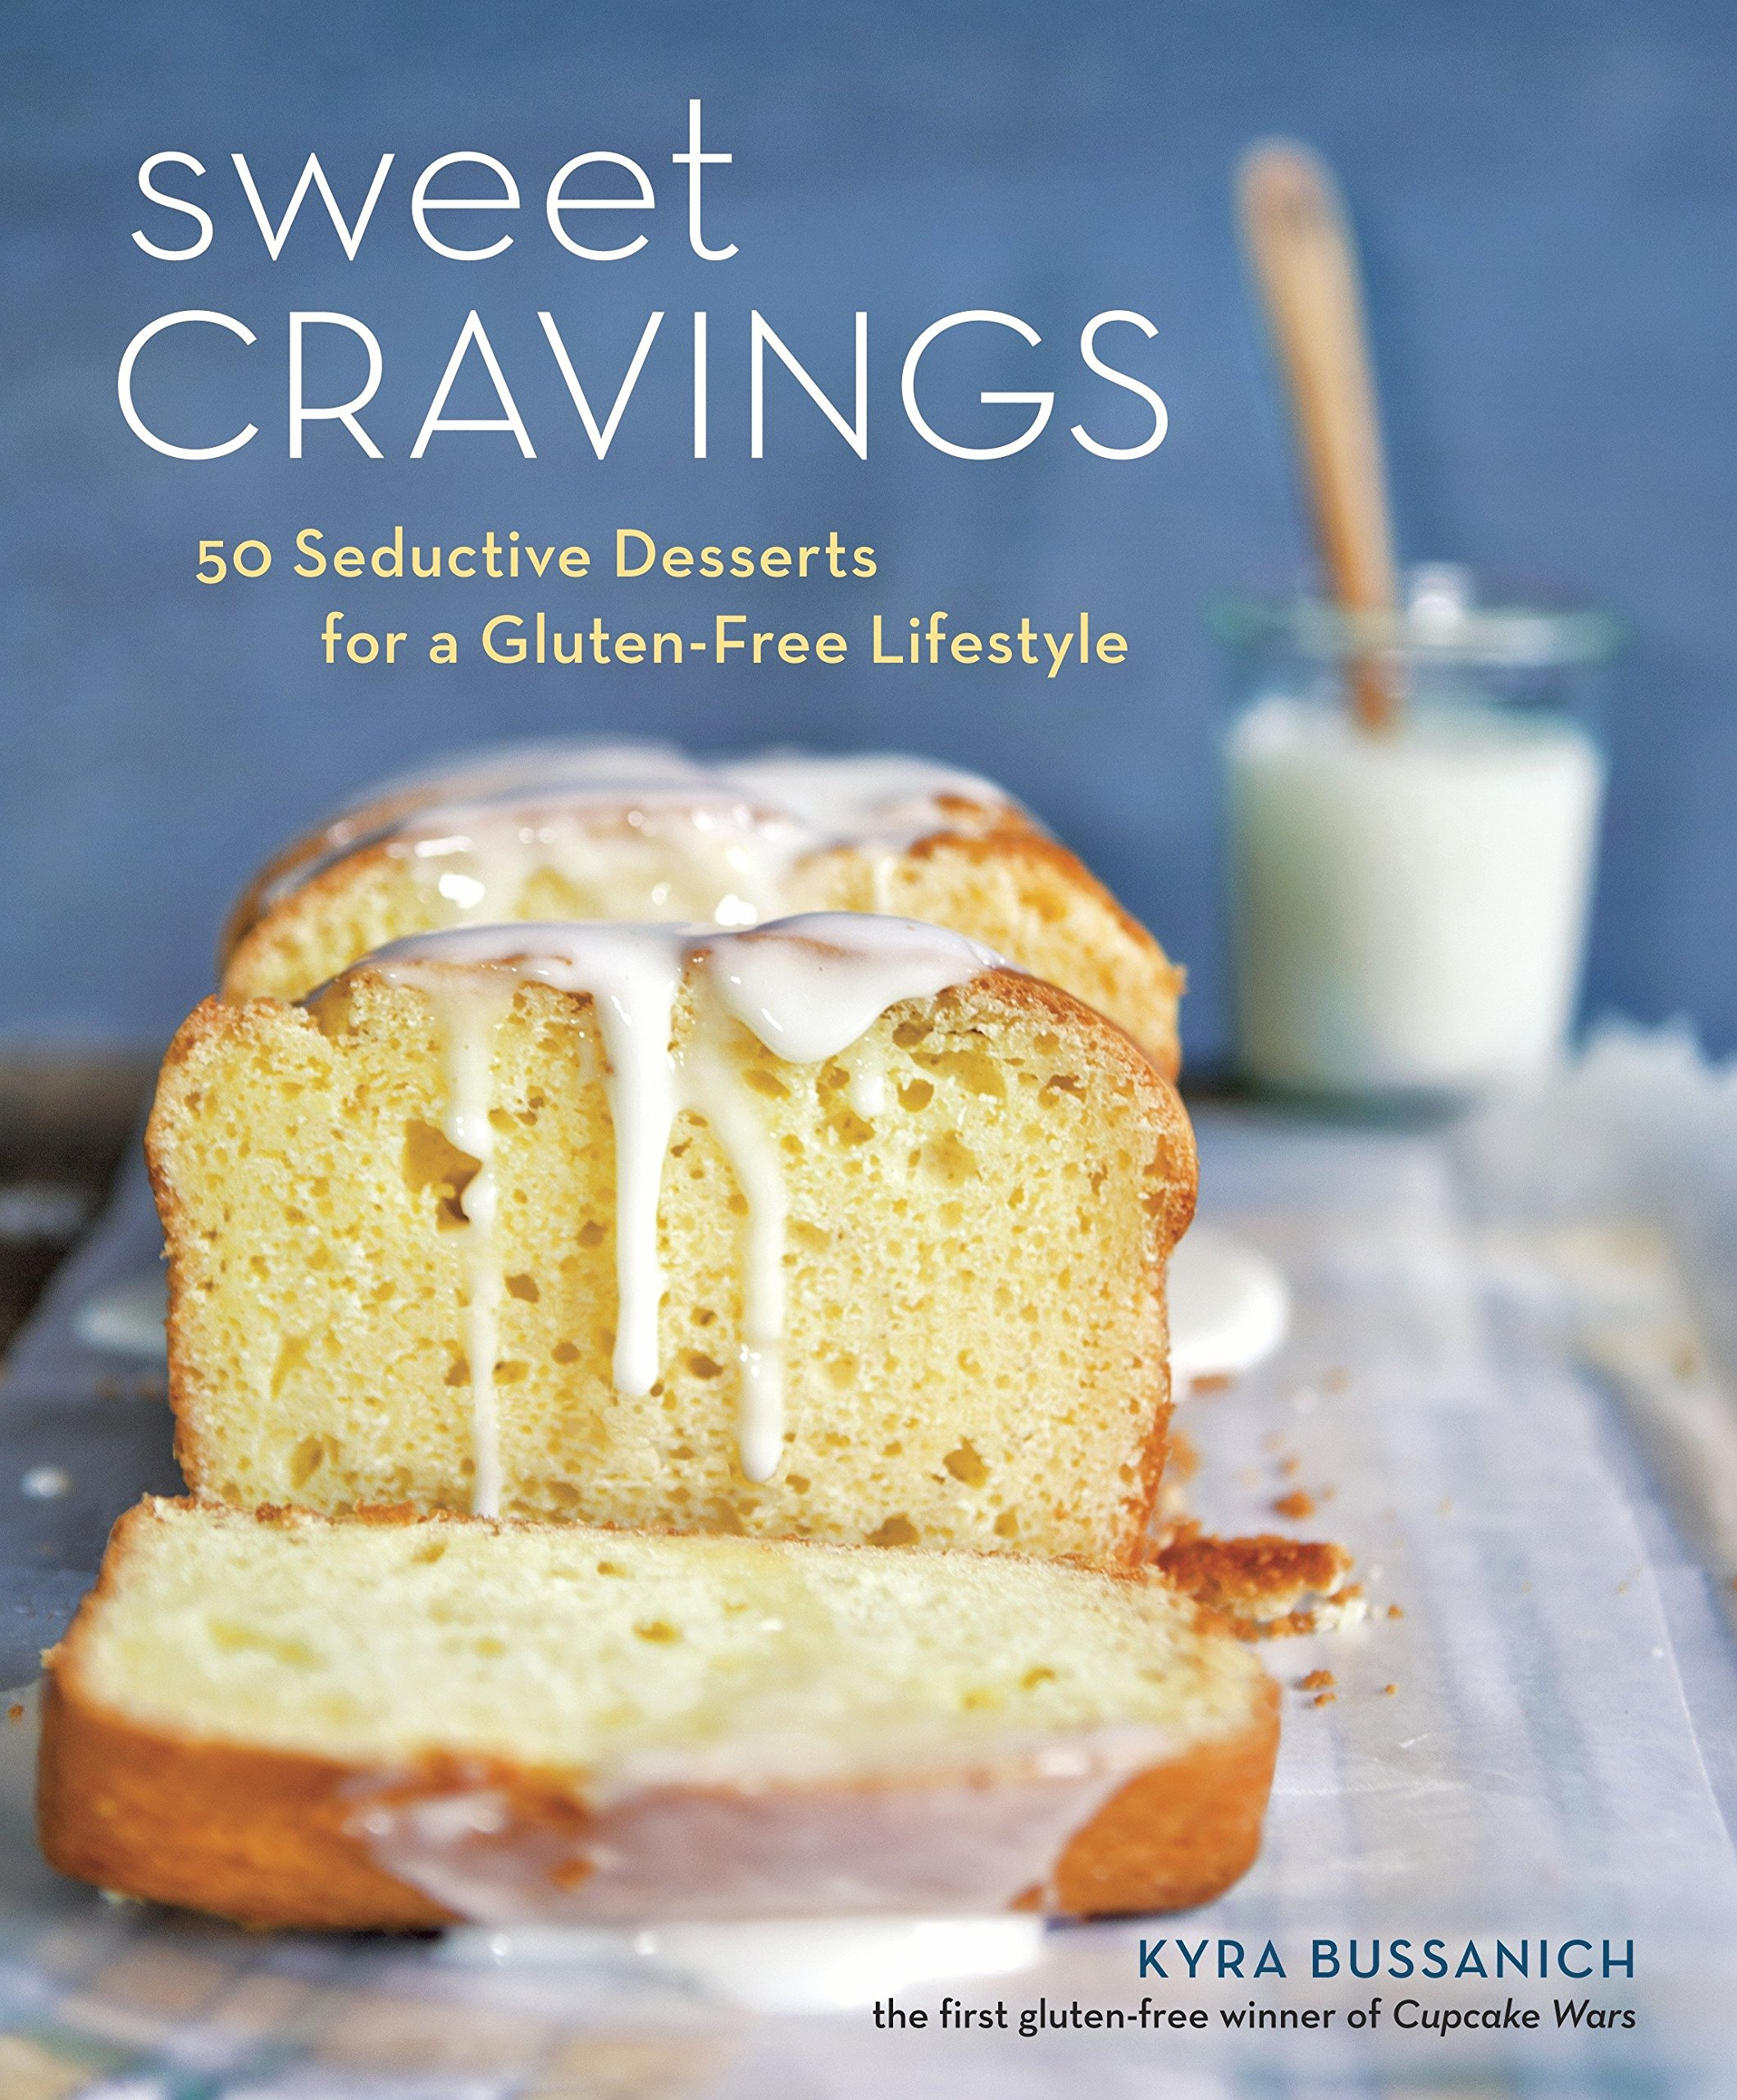 Sweet Cravings: 50 Seductive Desserts for a Gluten-Free Lifestyle ...